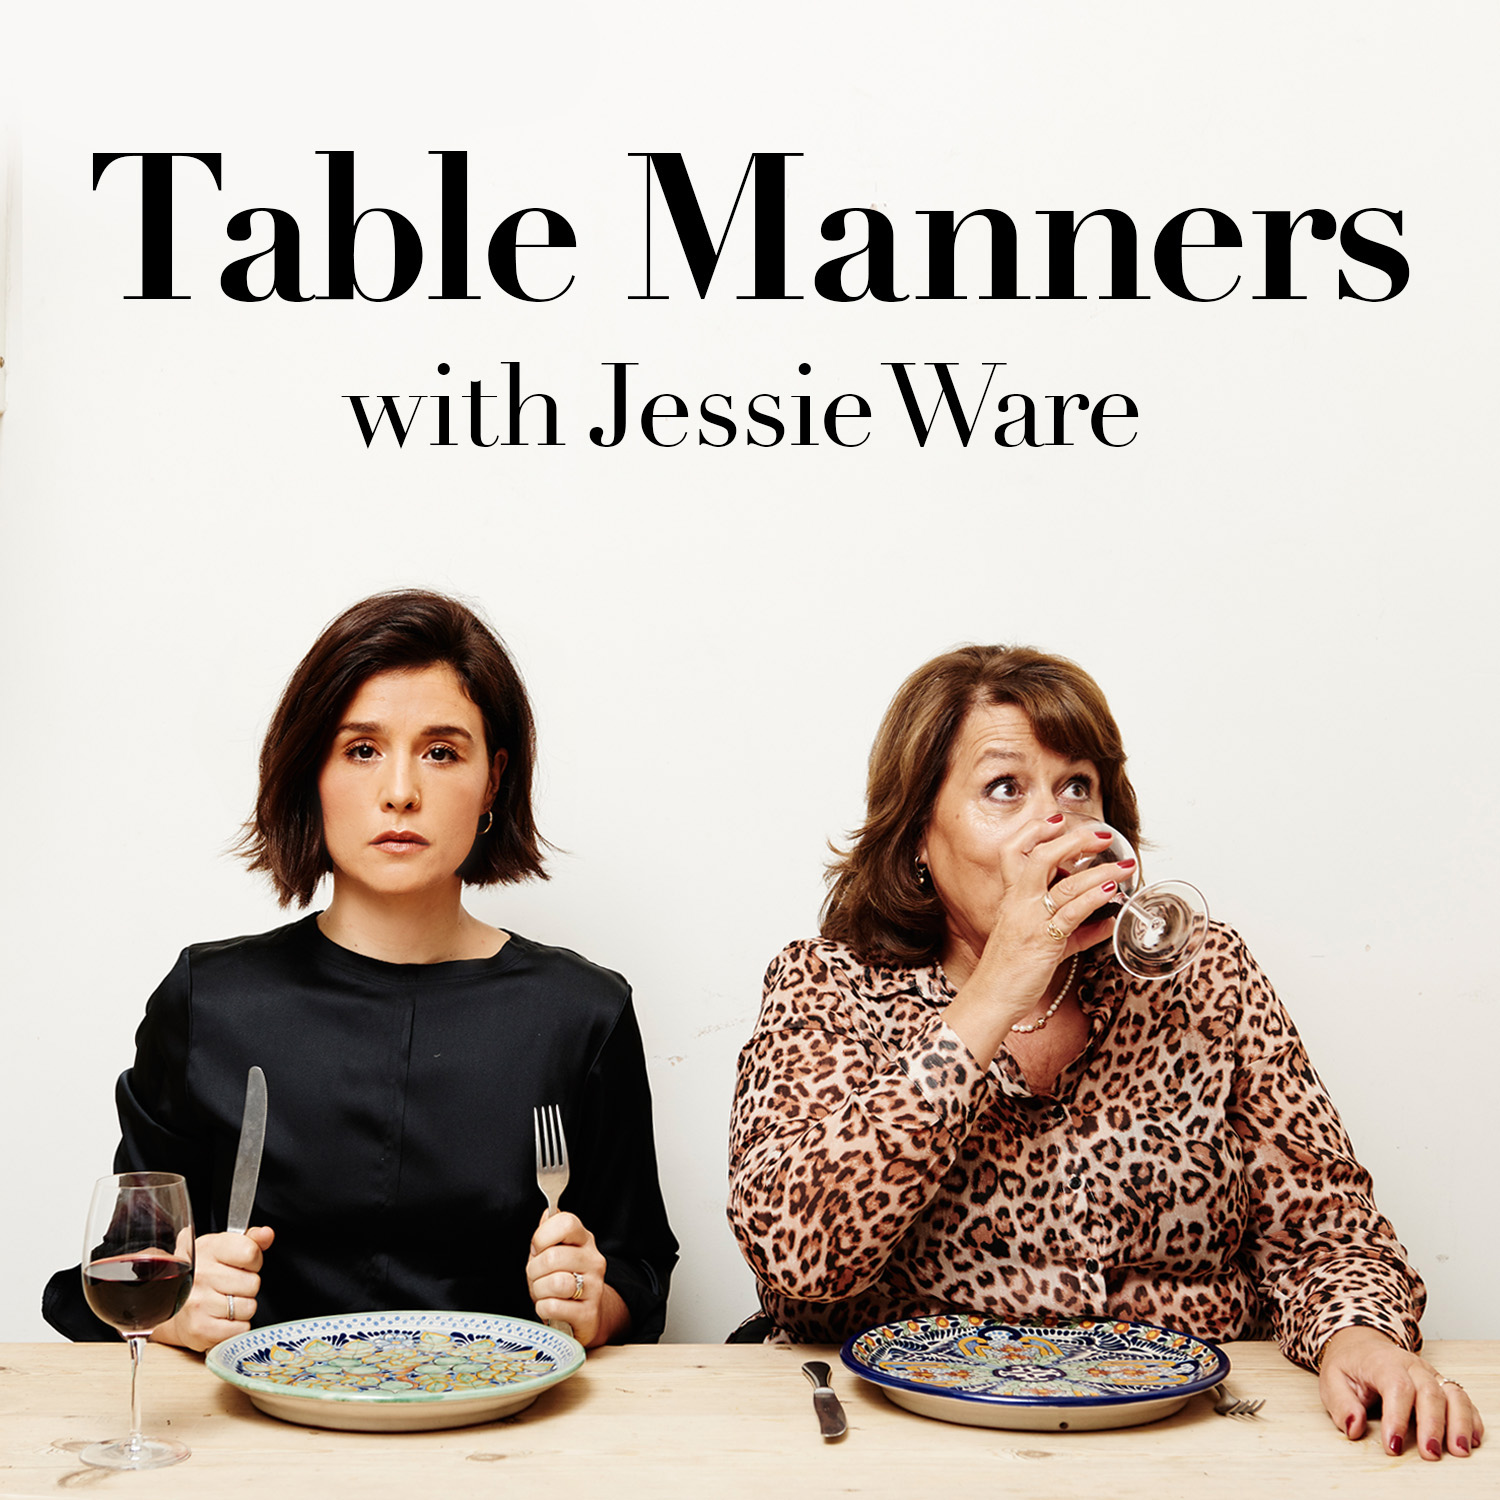 Table Manners Image.jpeg